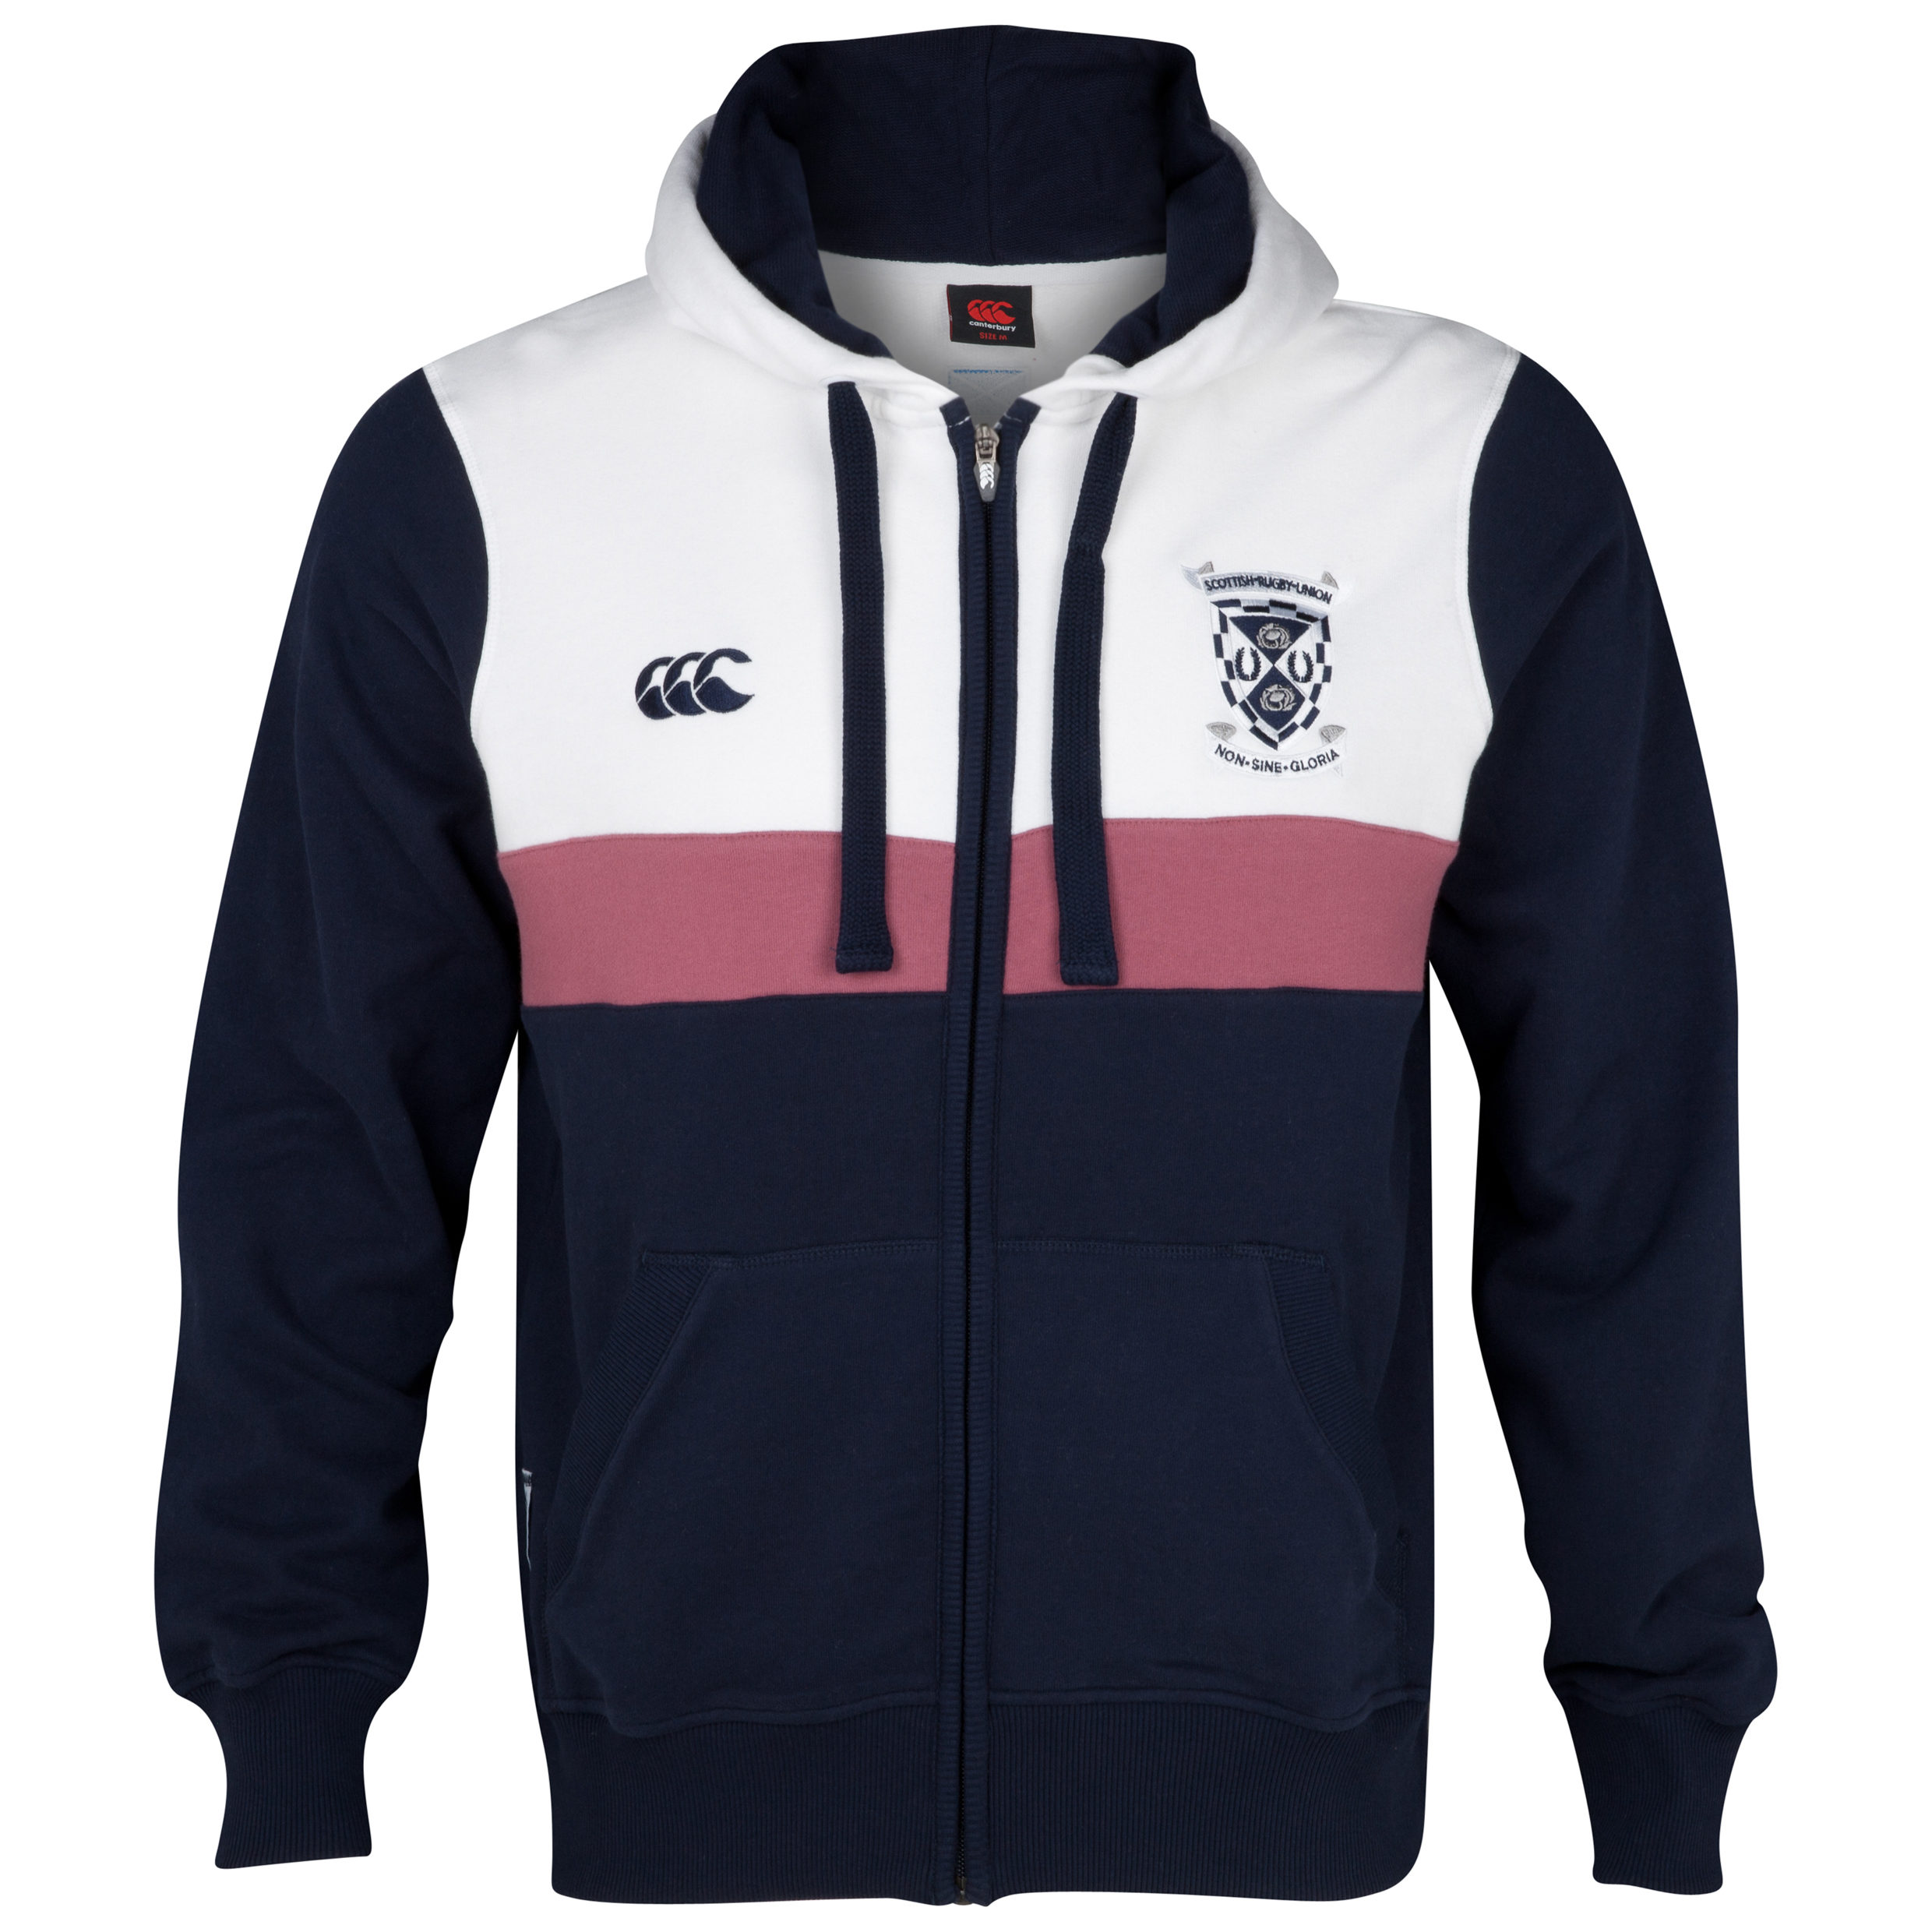 Scotland Full Zip Hooded Sweatshirt - Navy/White